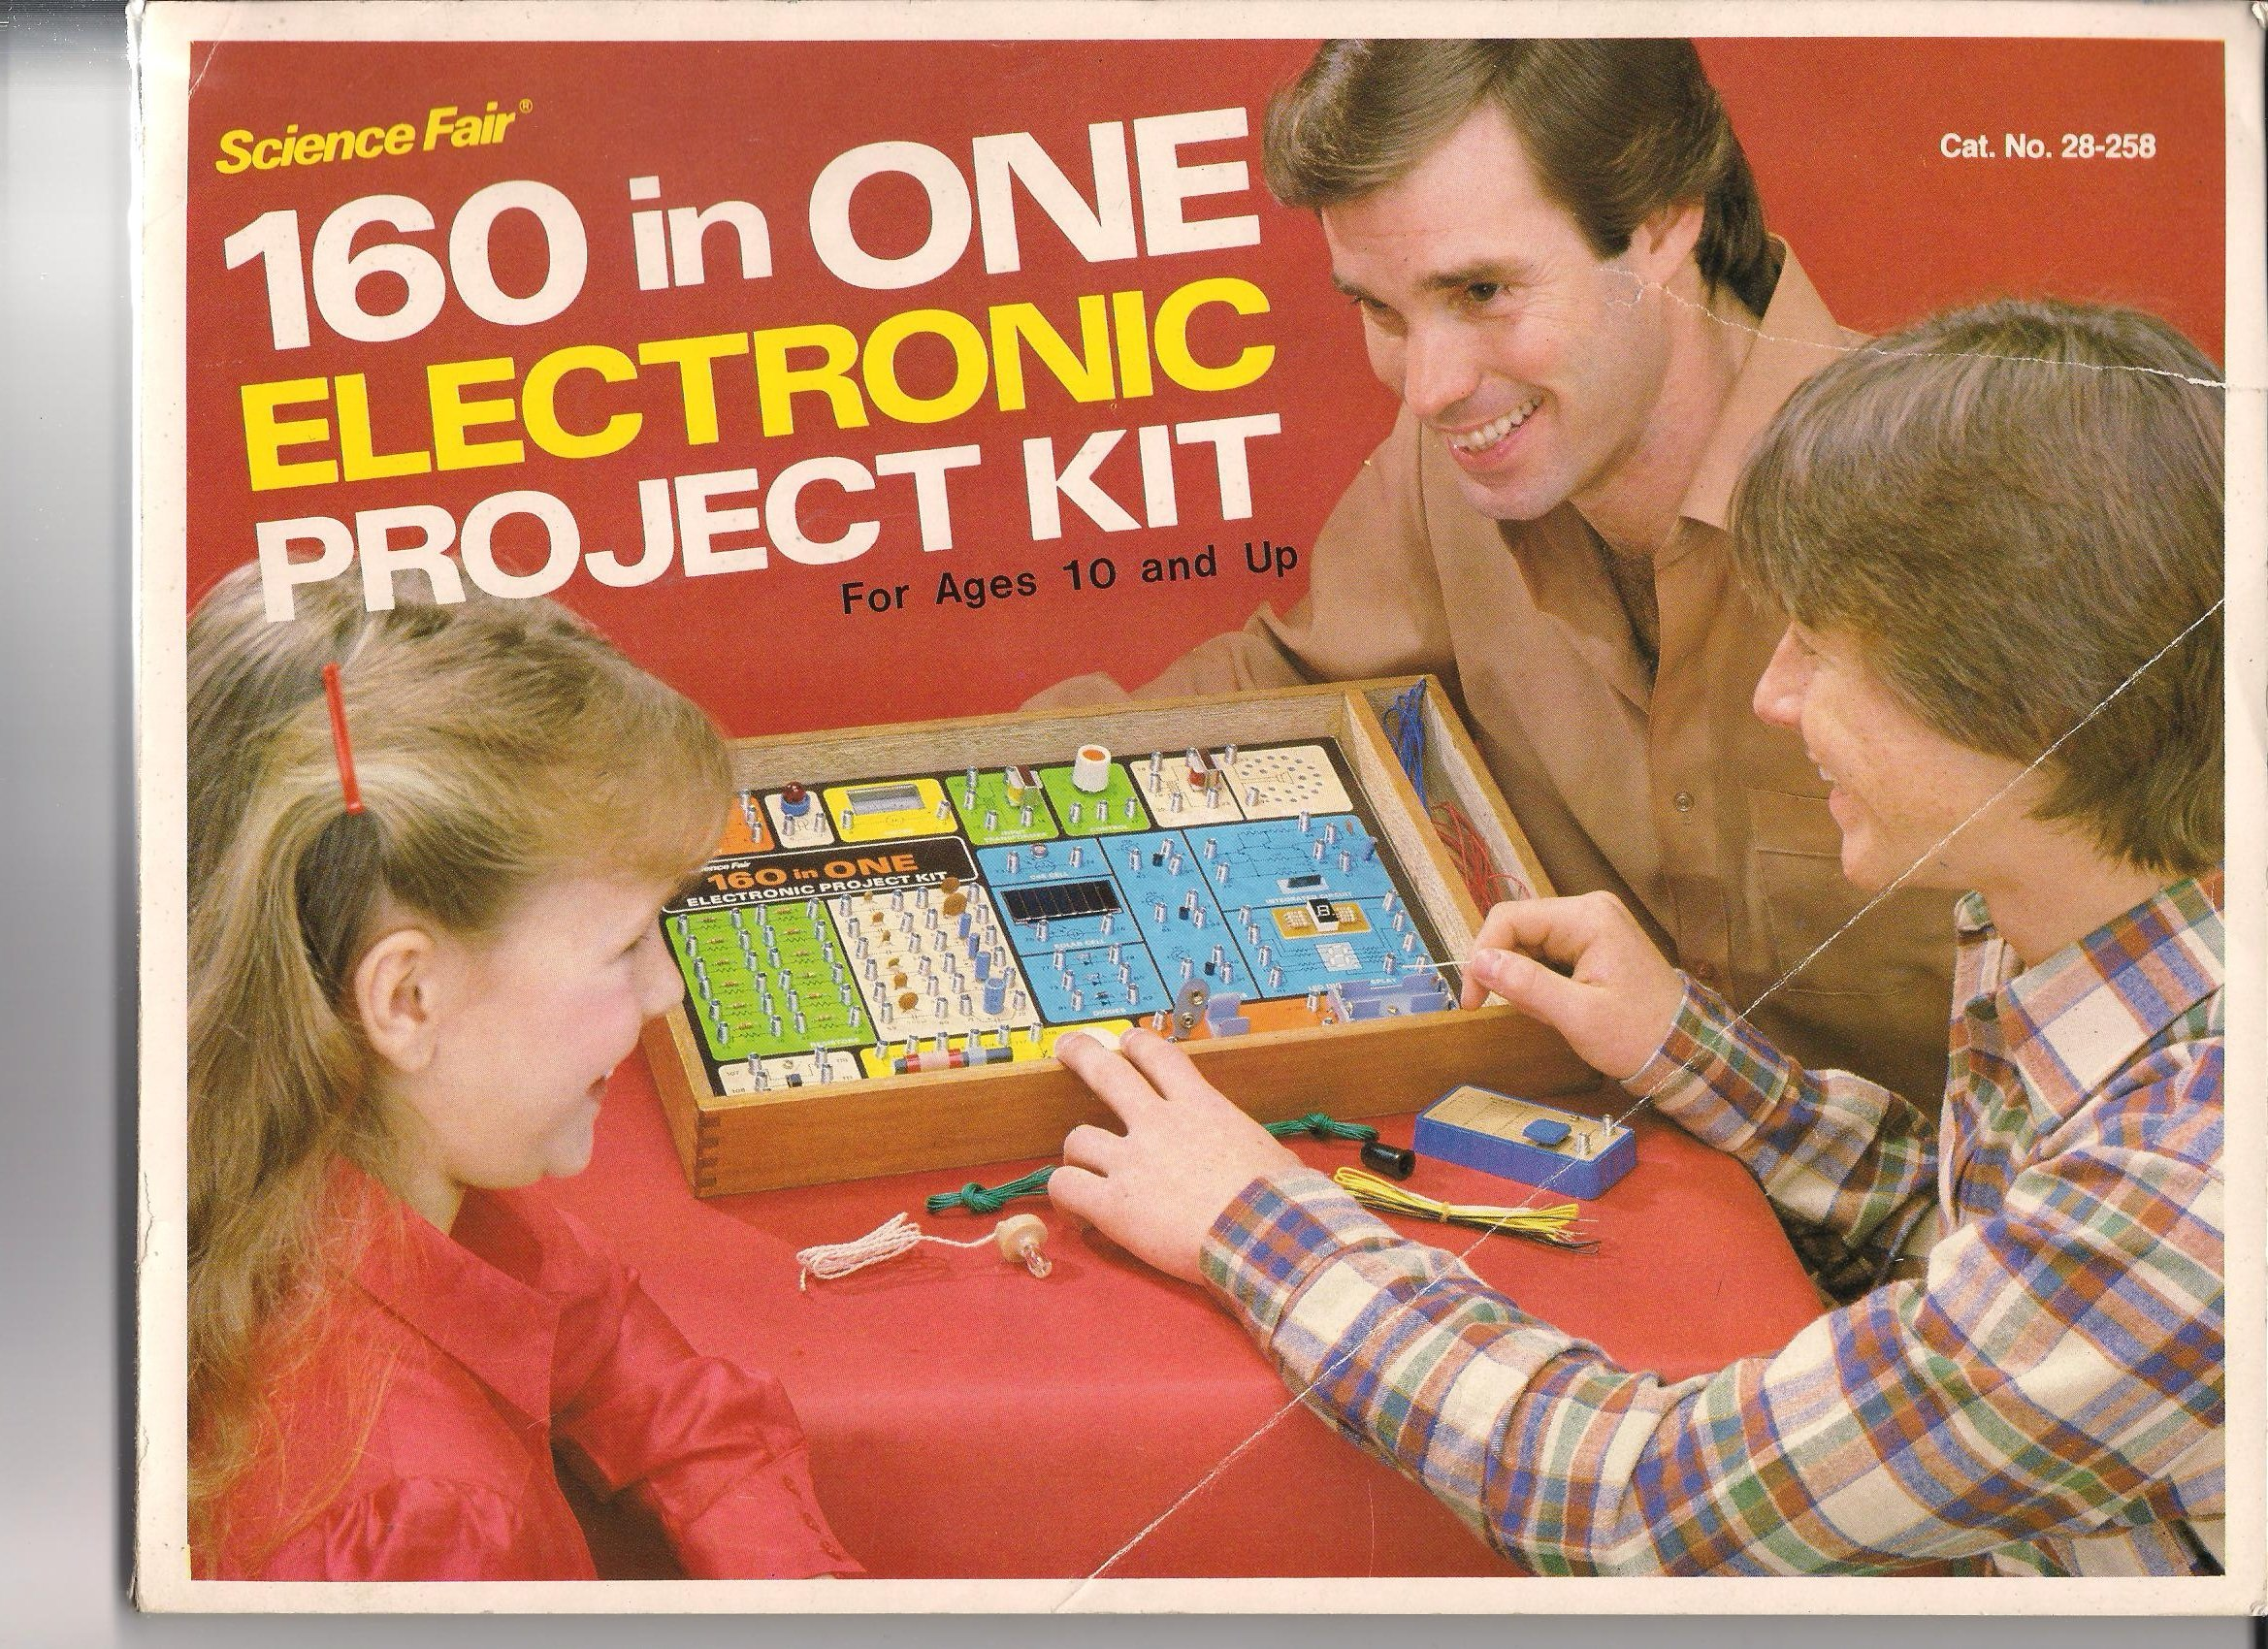 160 in One Electronic Project Kit for Ages 10 and up Manual (Science Fair  Cat. No. 28-258): Radio Shack: Amazon.com: Books